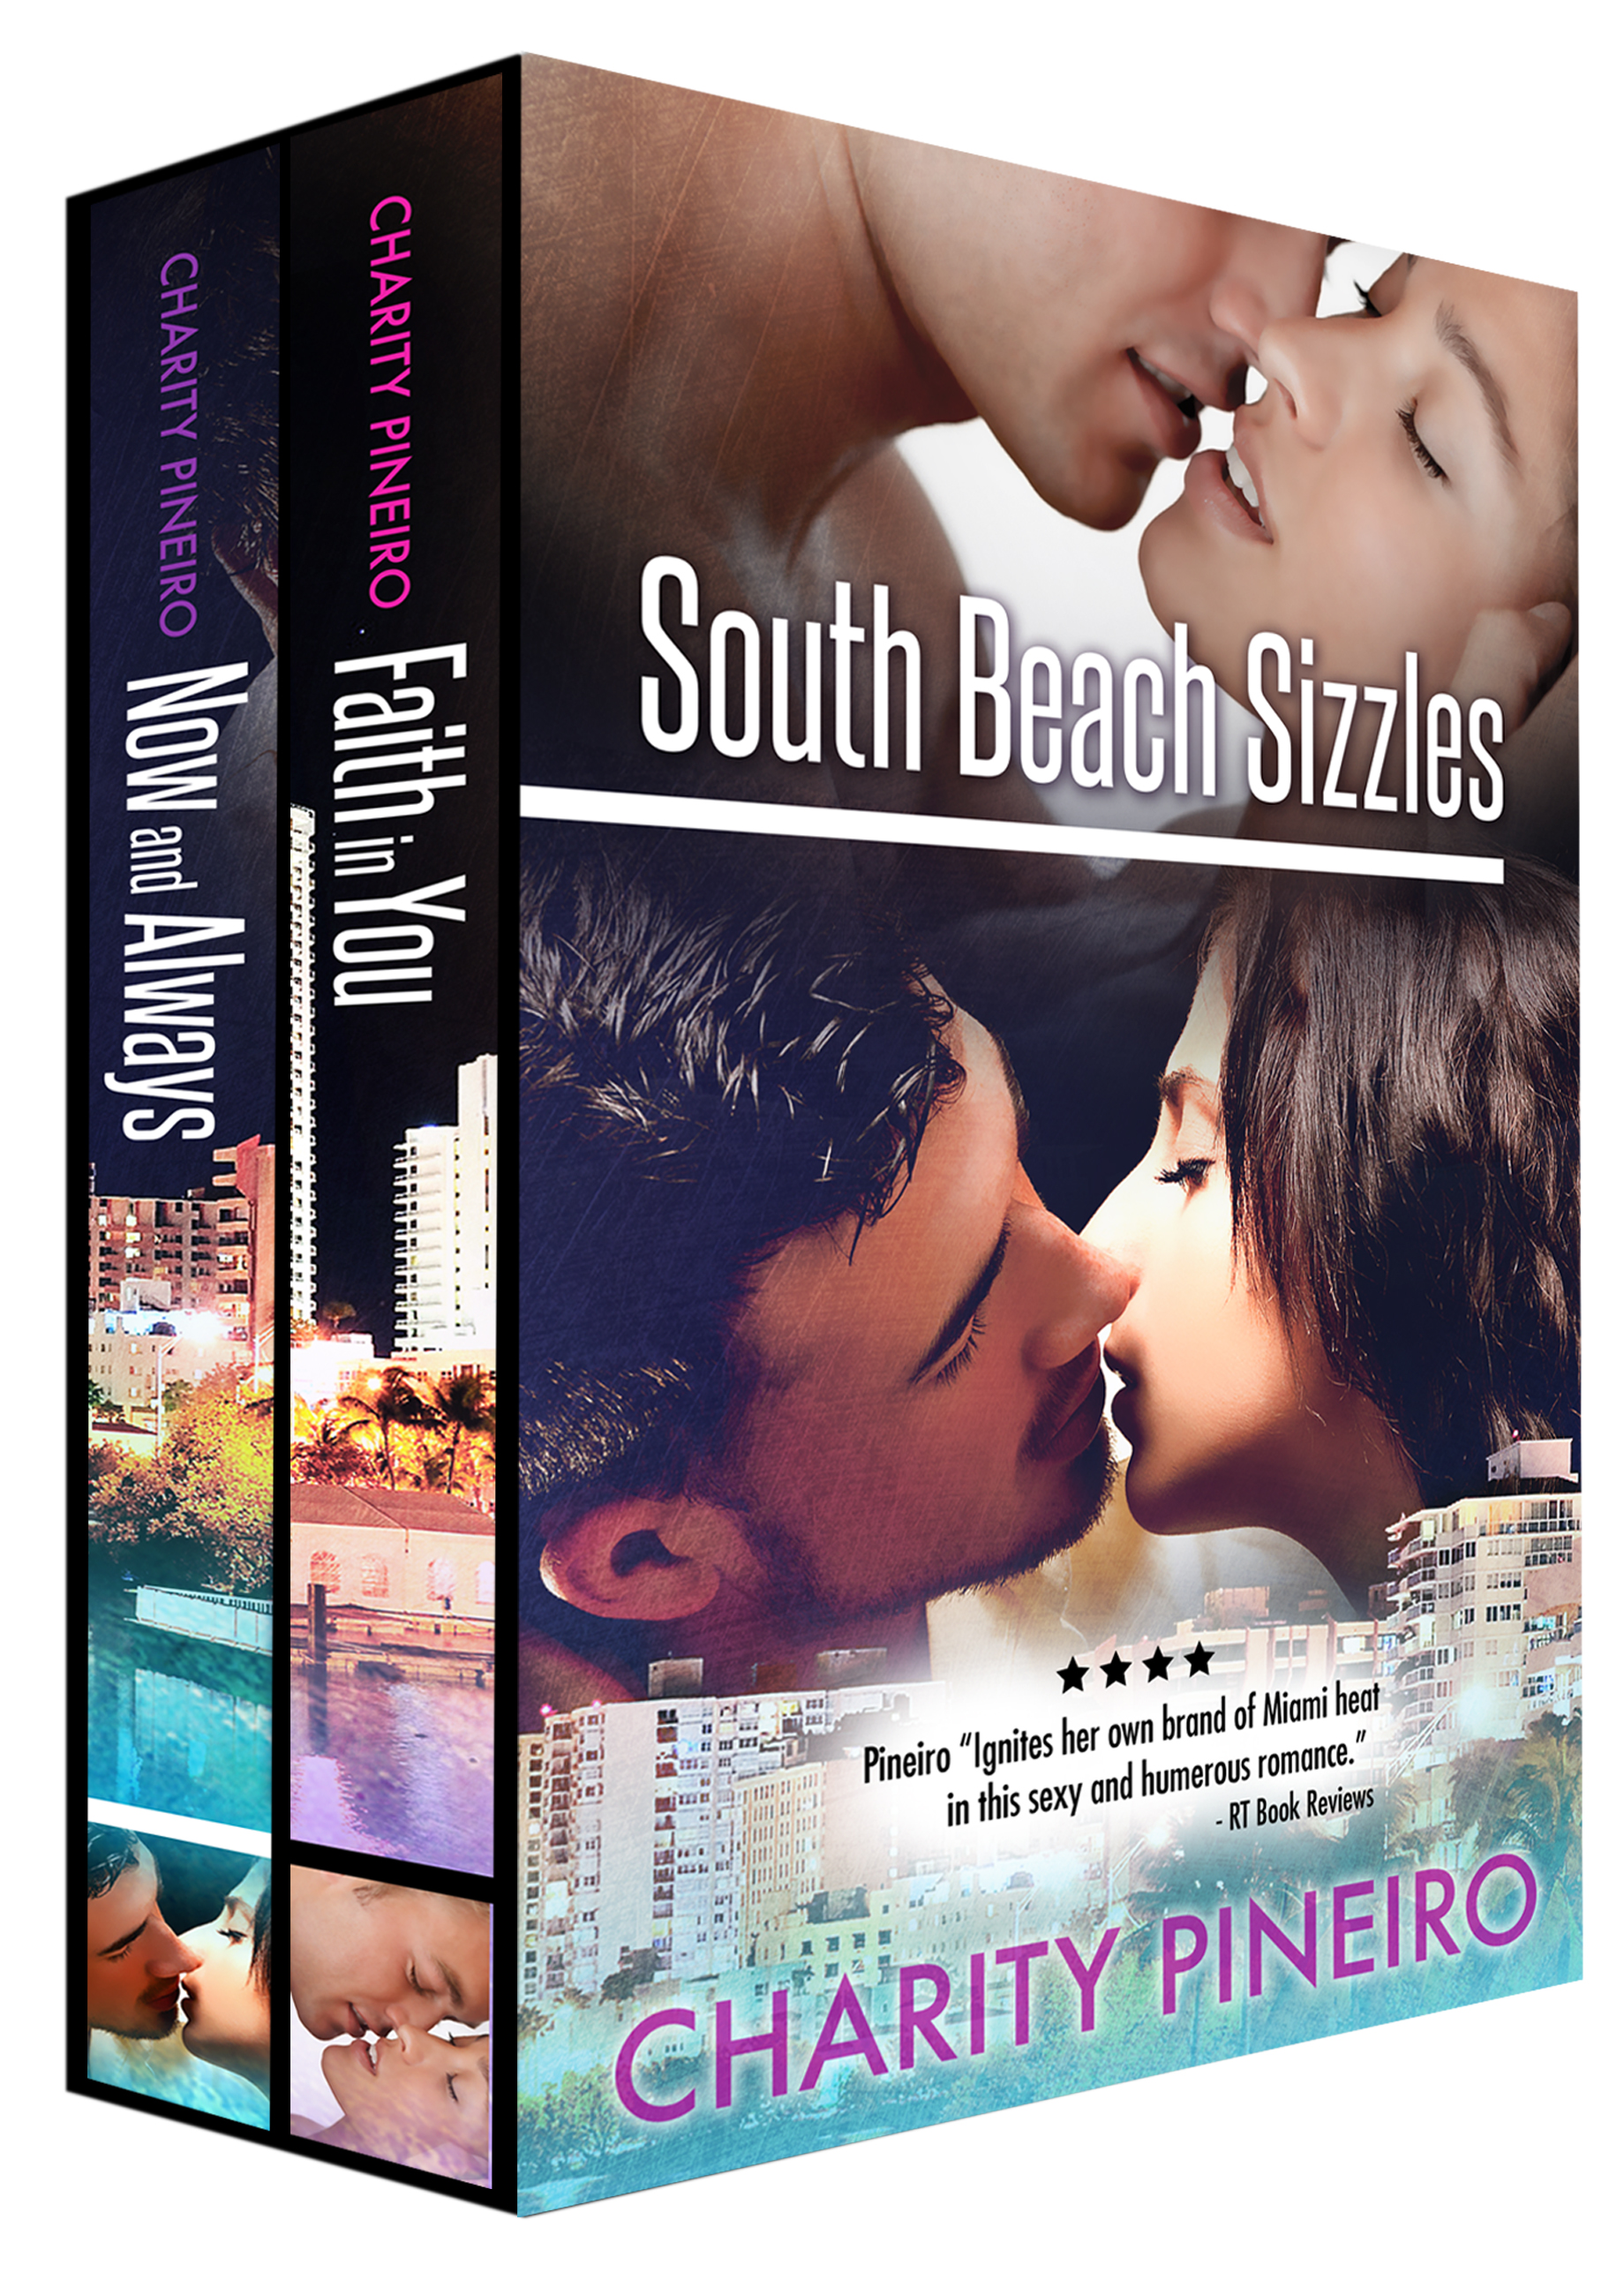 SouthBeach Sizzle boxed set